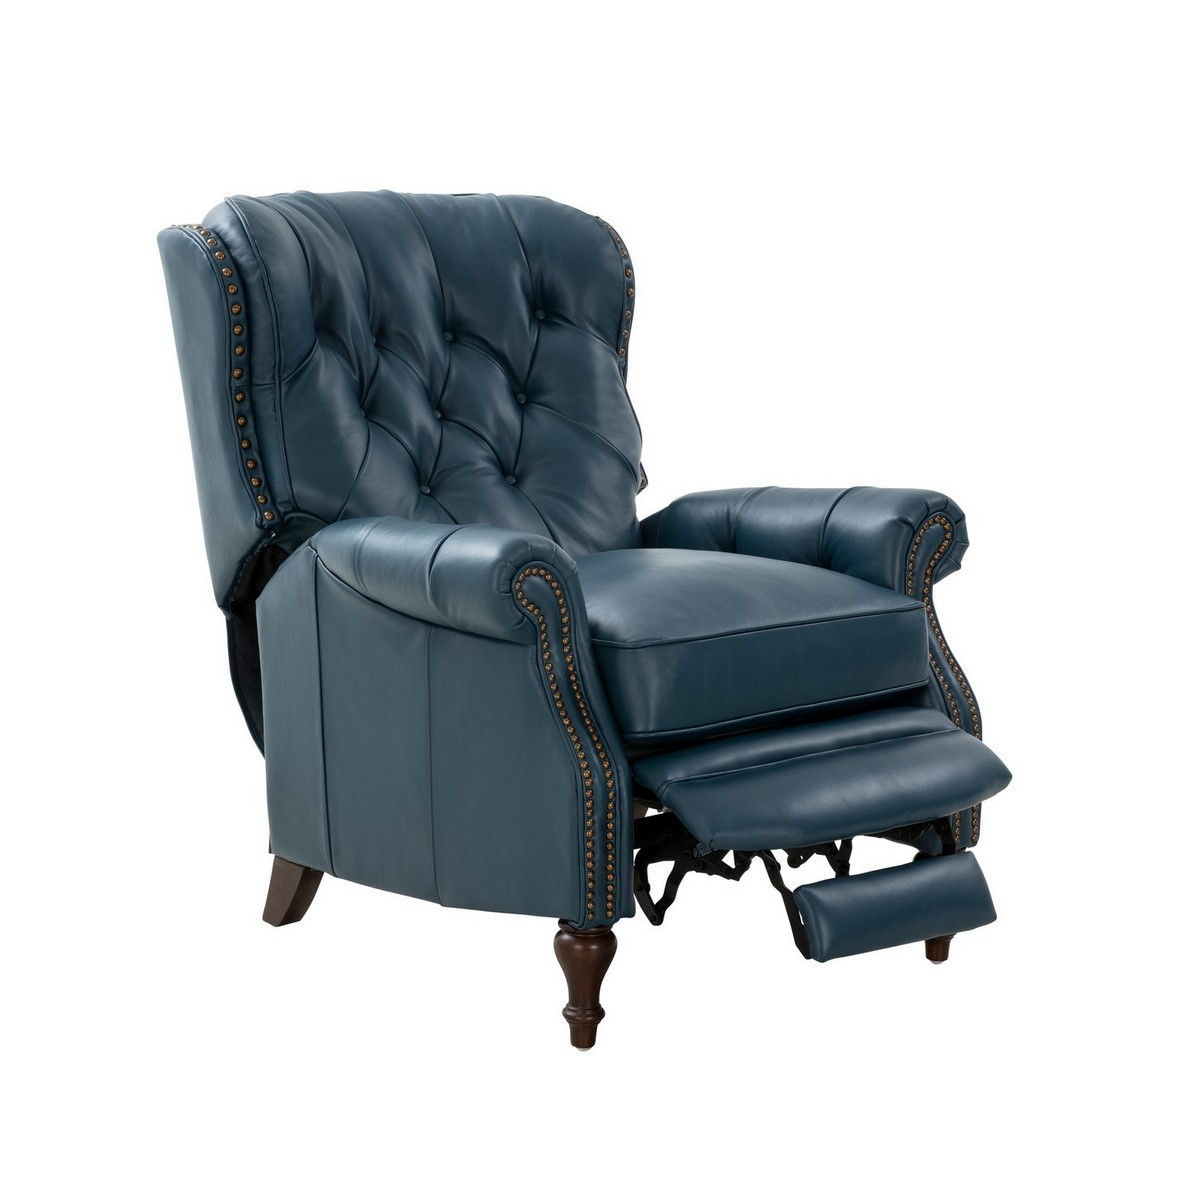 Barcalounger Kendall Recliner Chair - Prestin Yale Blue/All Leather